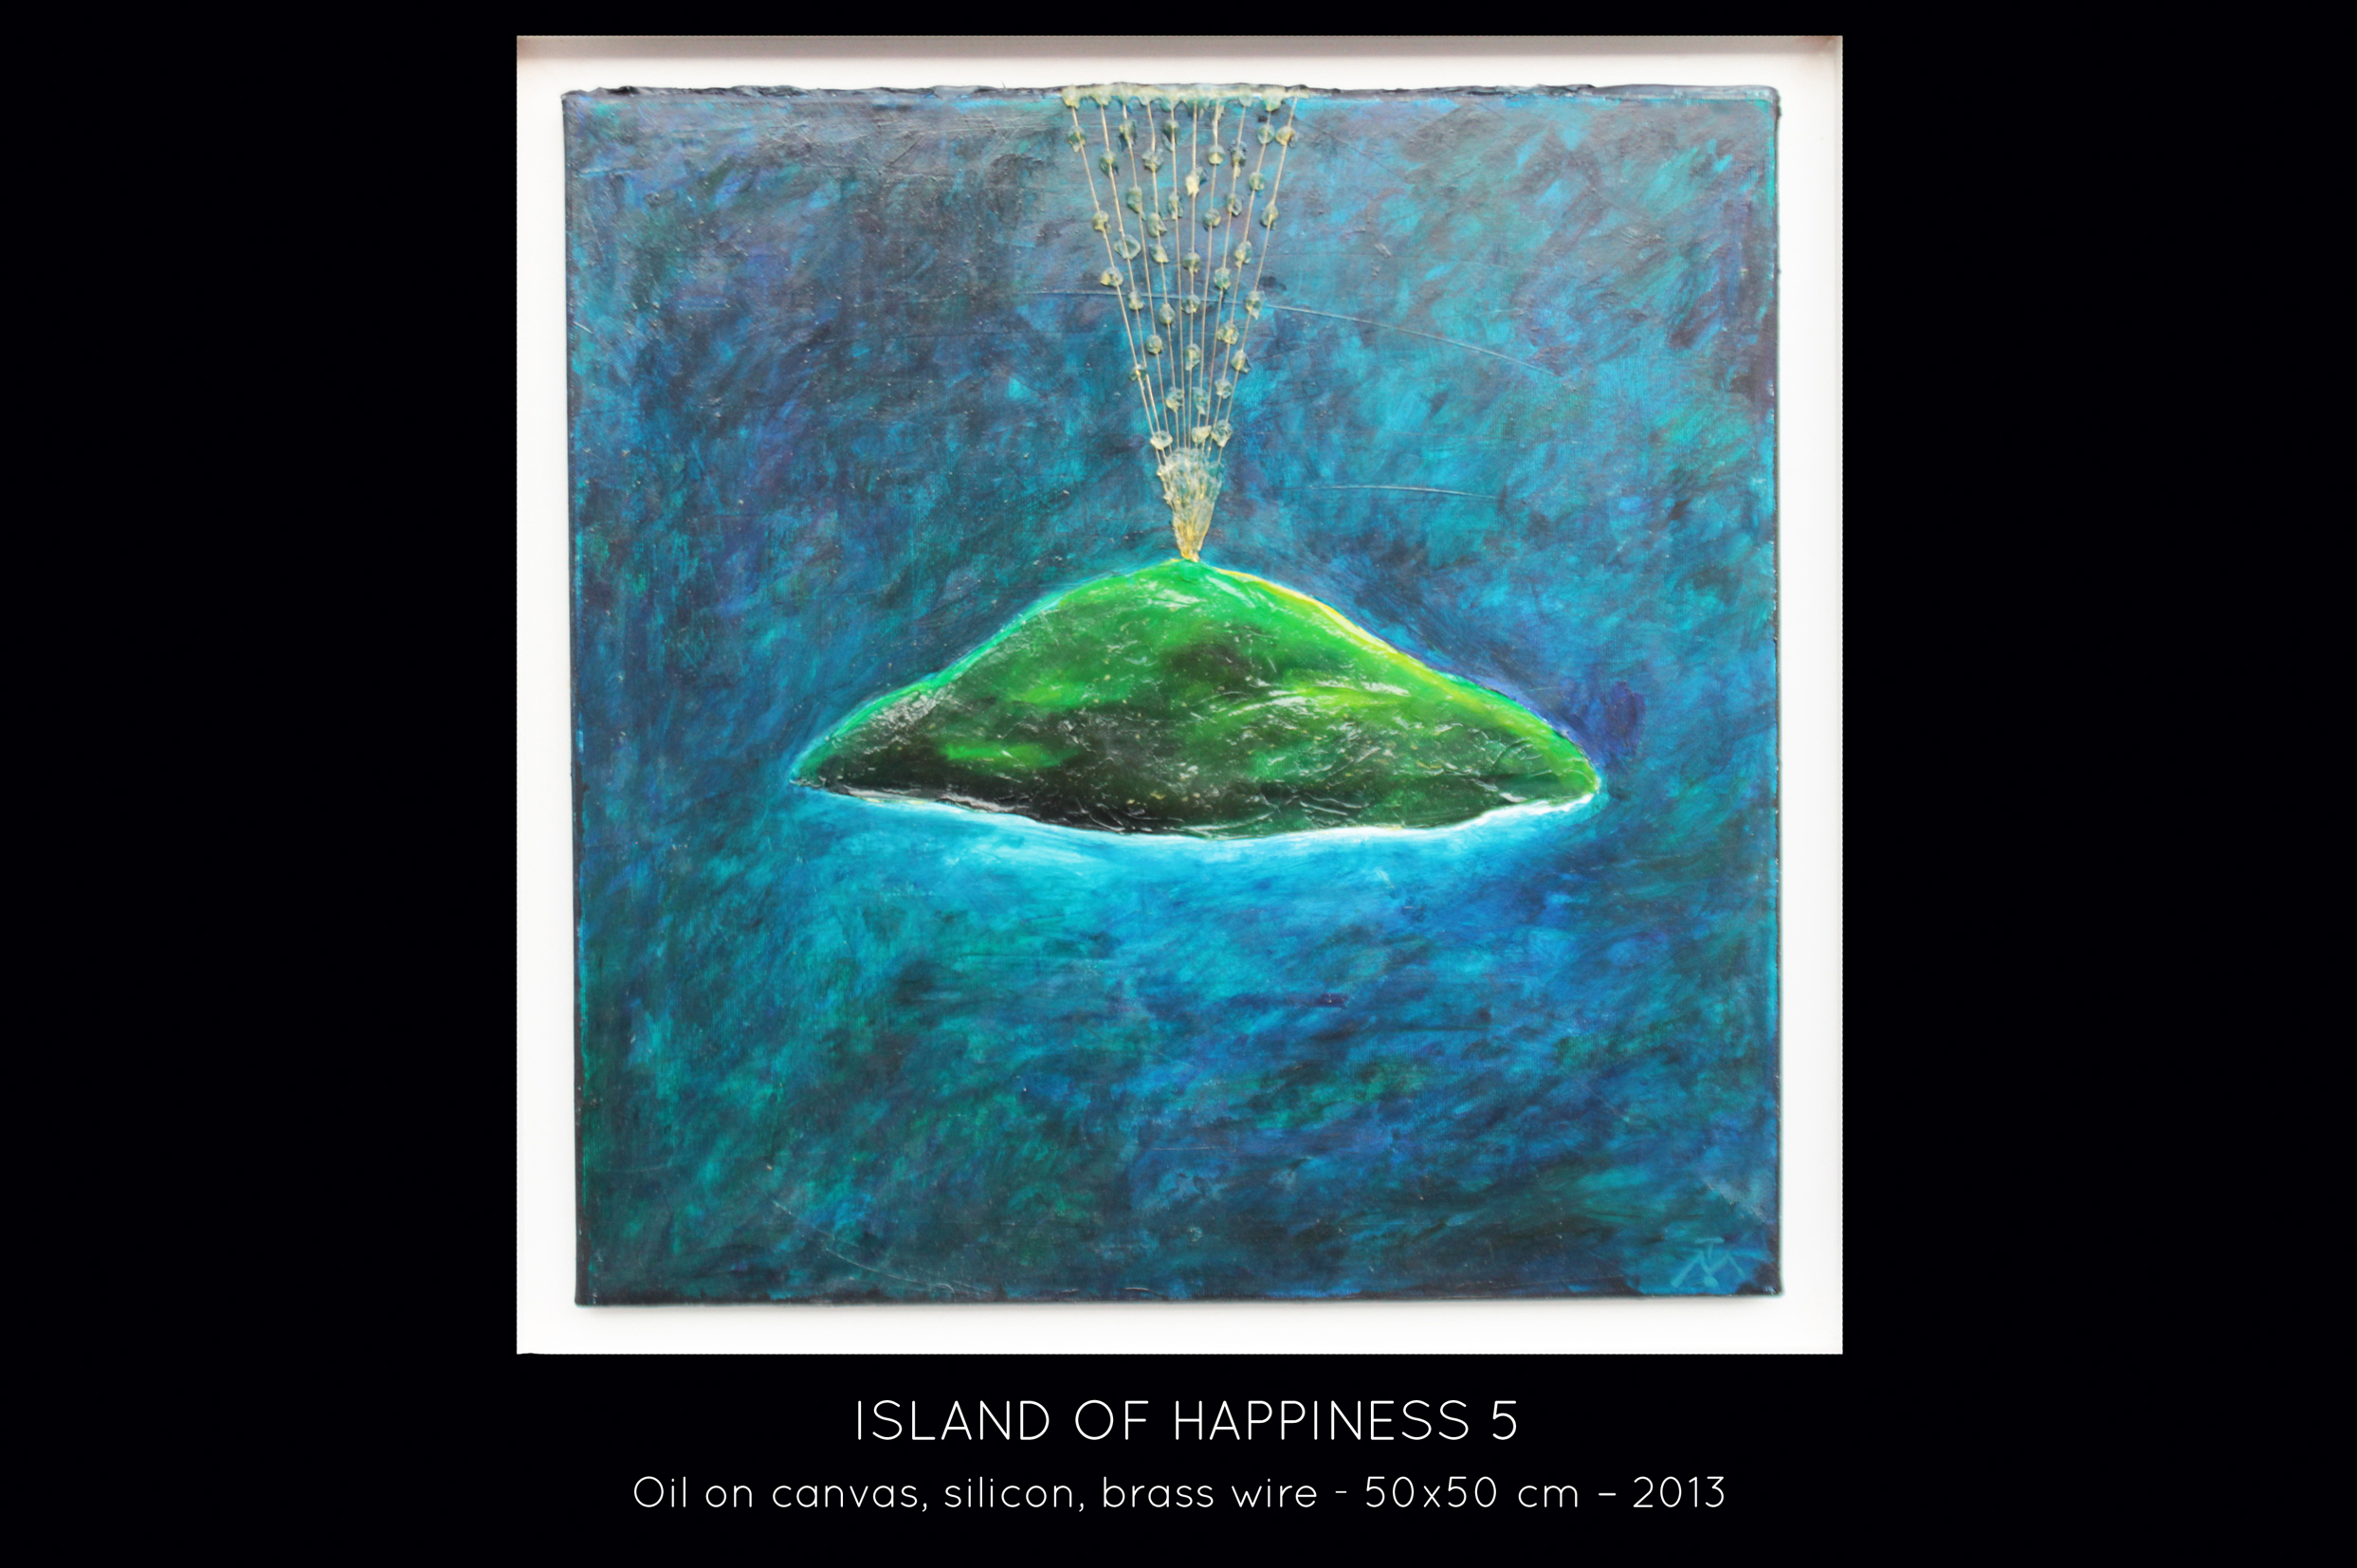 ISLAND OF HAPPINESS 5